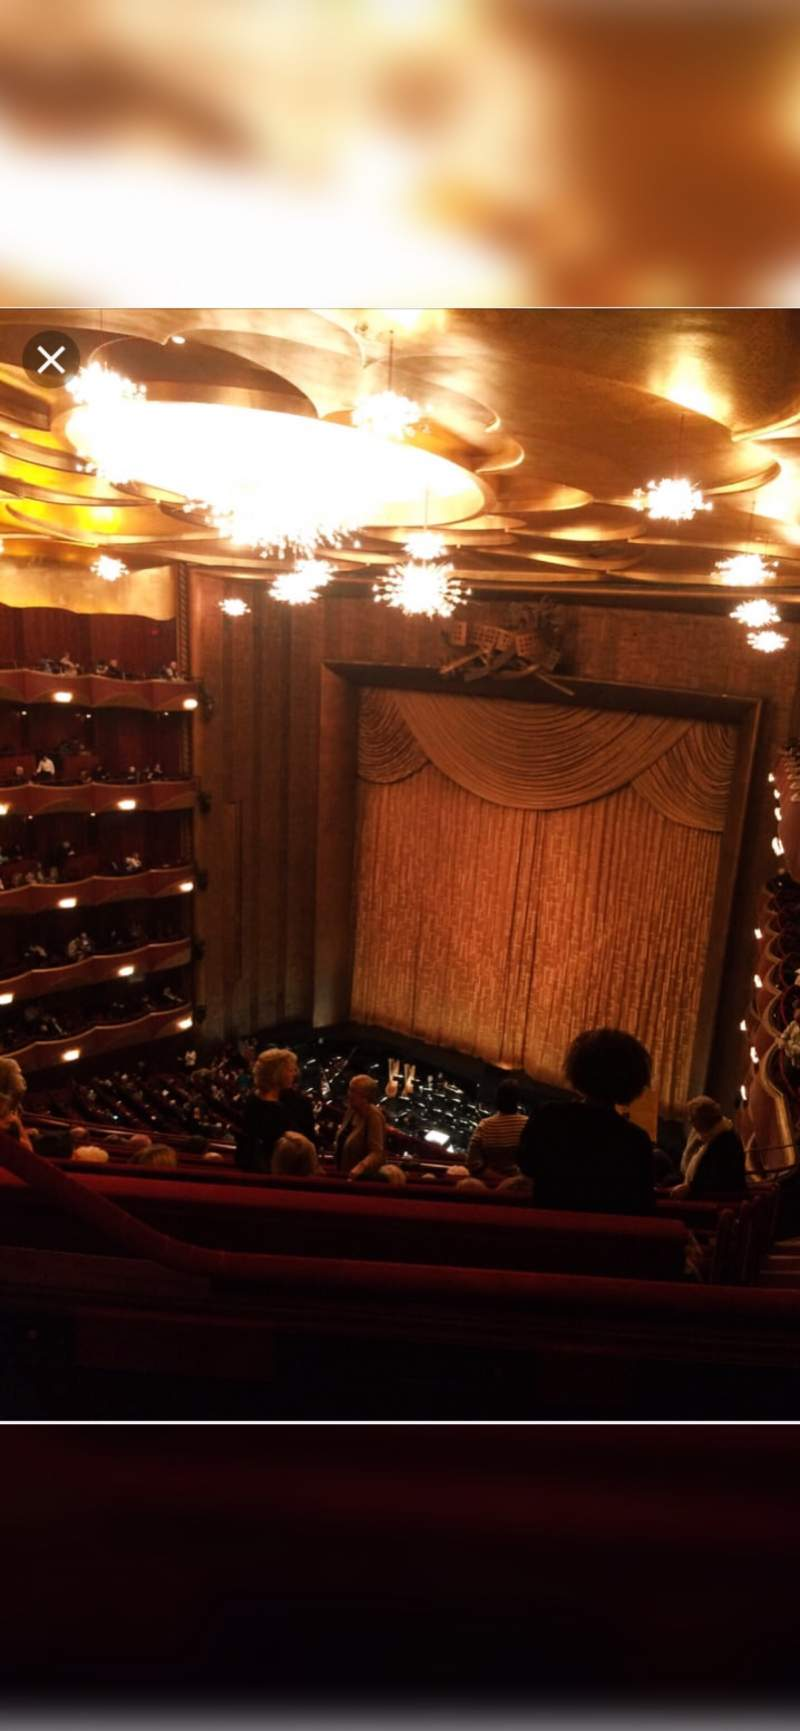 Seating view for Metropolitan Opera House - Lincoln Center Section Balcony Row L Seat 5